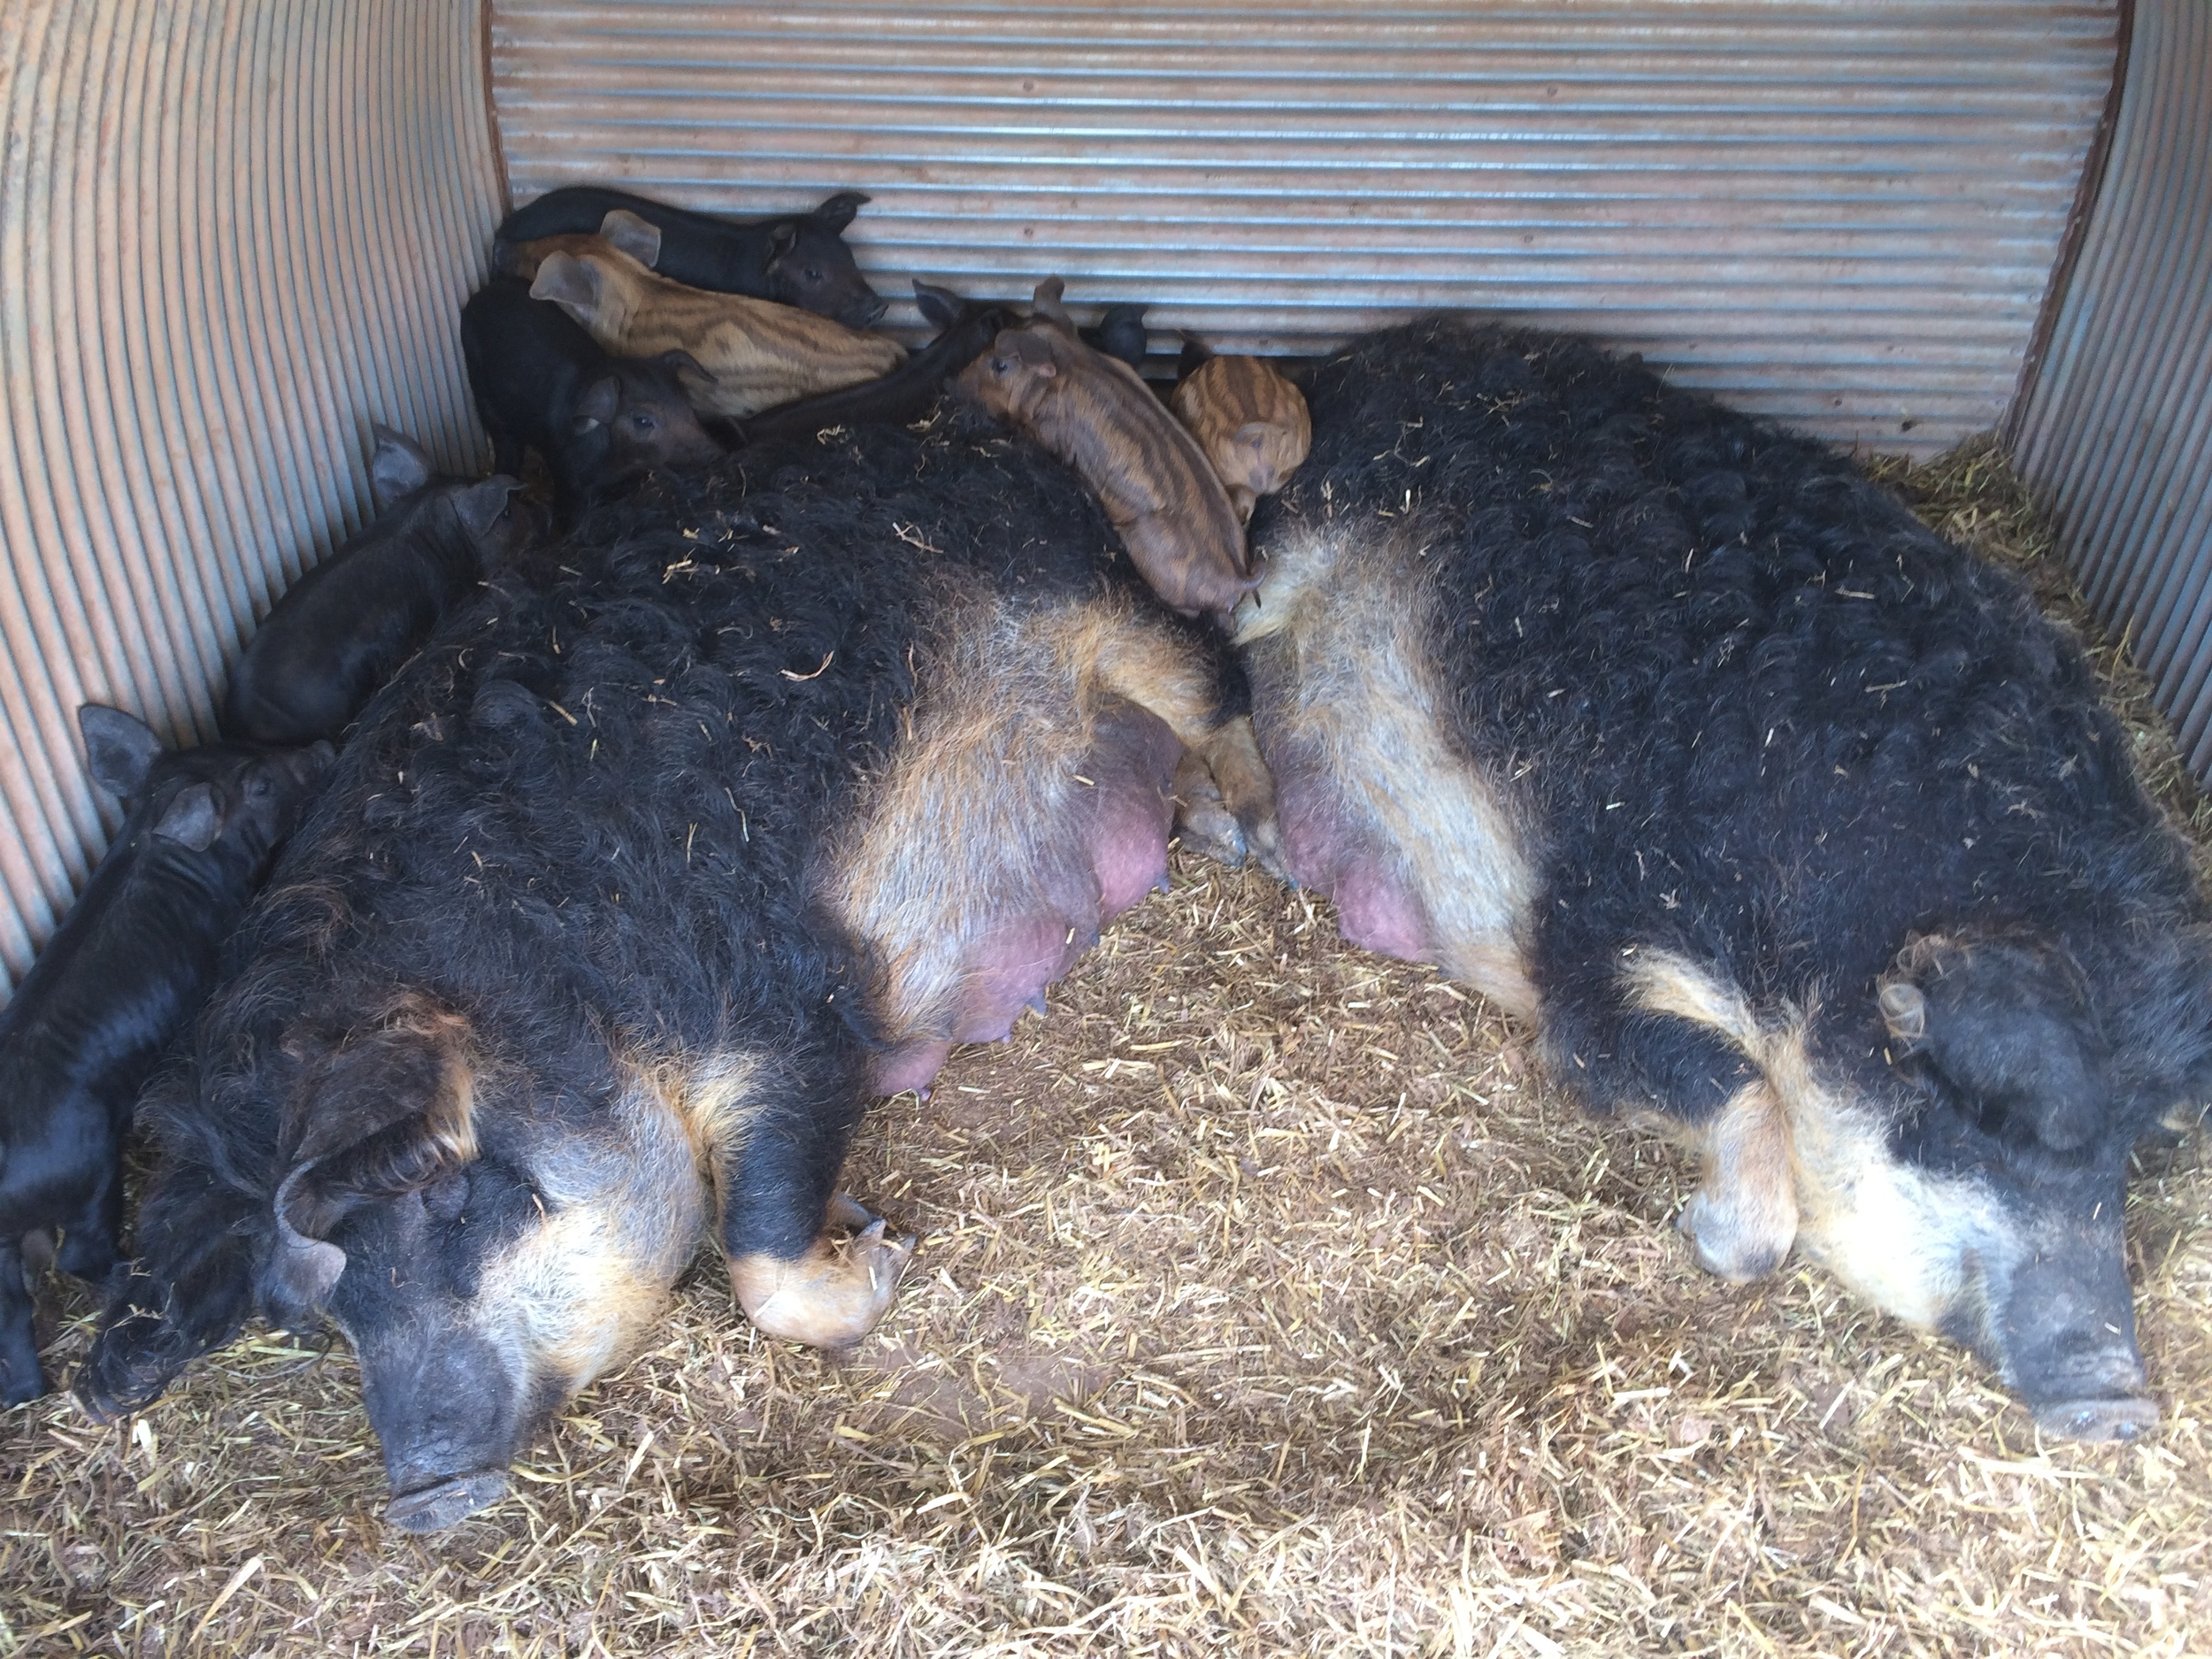 Lollipop and Jellybean with their piglets.